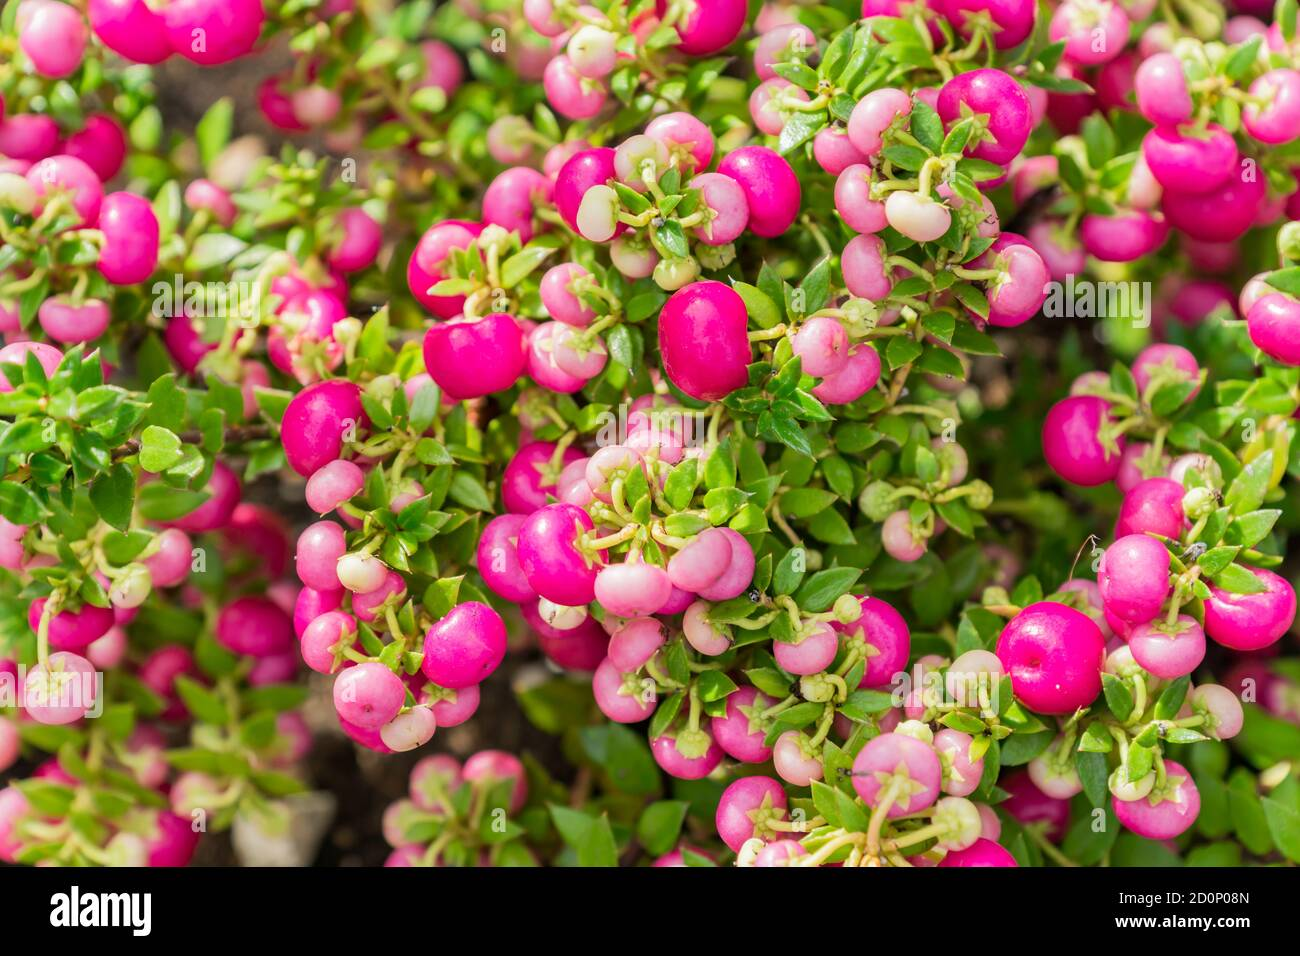 Pernettya Berries.Pernettya Mucronata Evergreen Shrub With Pink Berries Autumn Plant Background Stock Photo Alamy